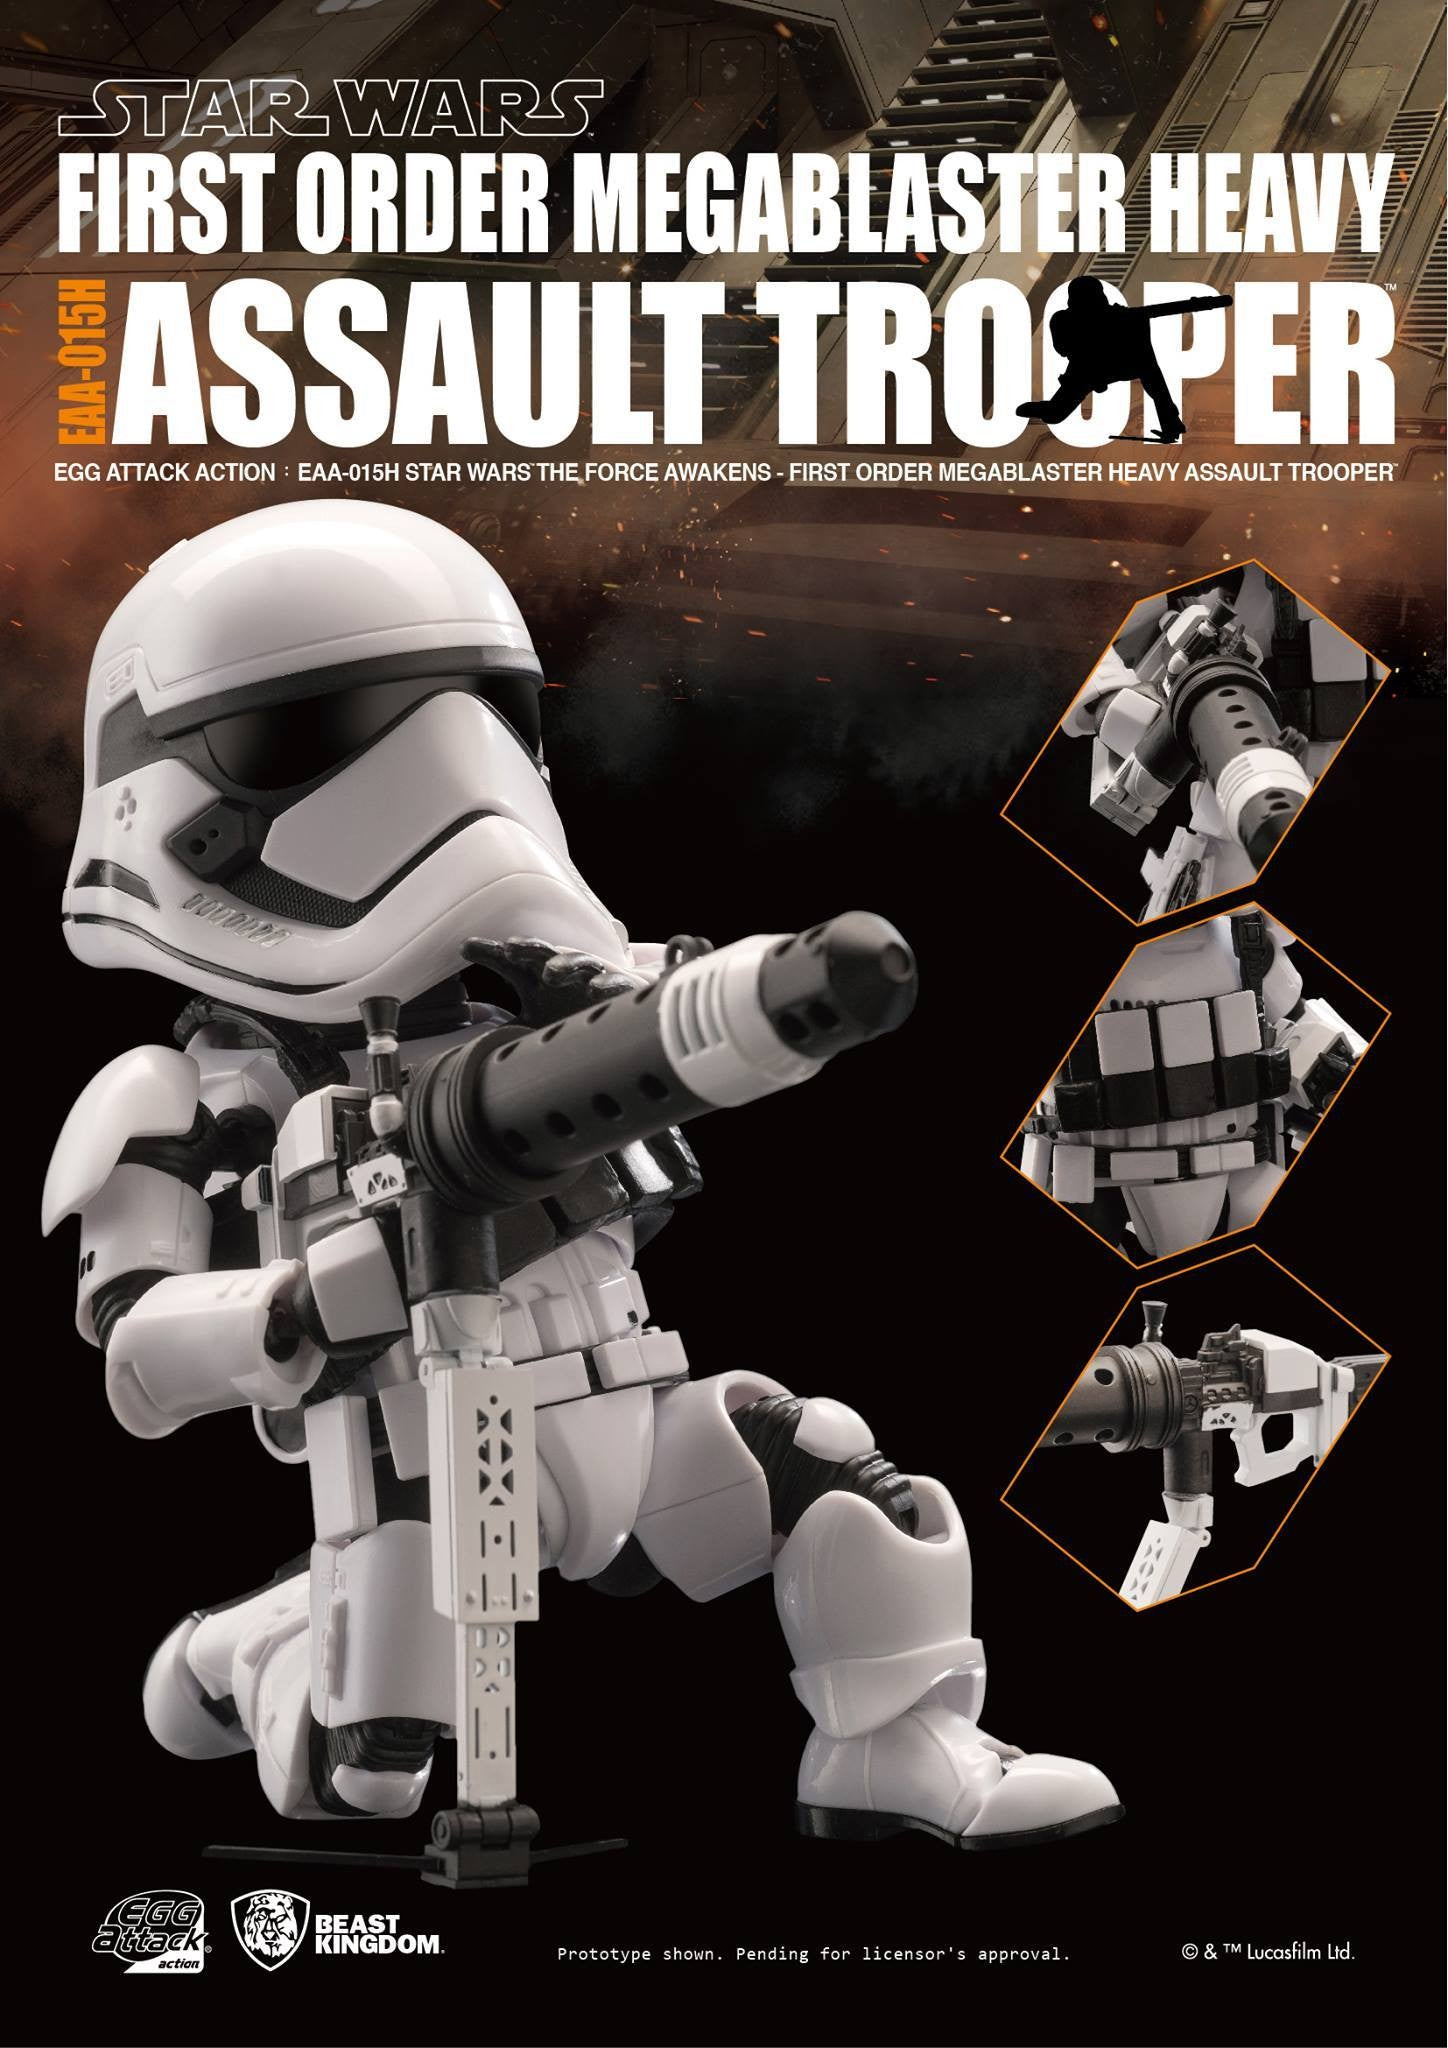 Egg Attack Action - EAA-015H - Star Wars: The Force Awakens - Megablaster Heavy Assault Trooper - Marvelous Toys - 4